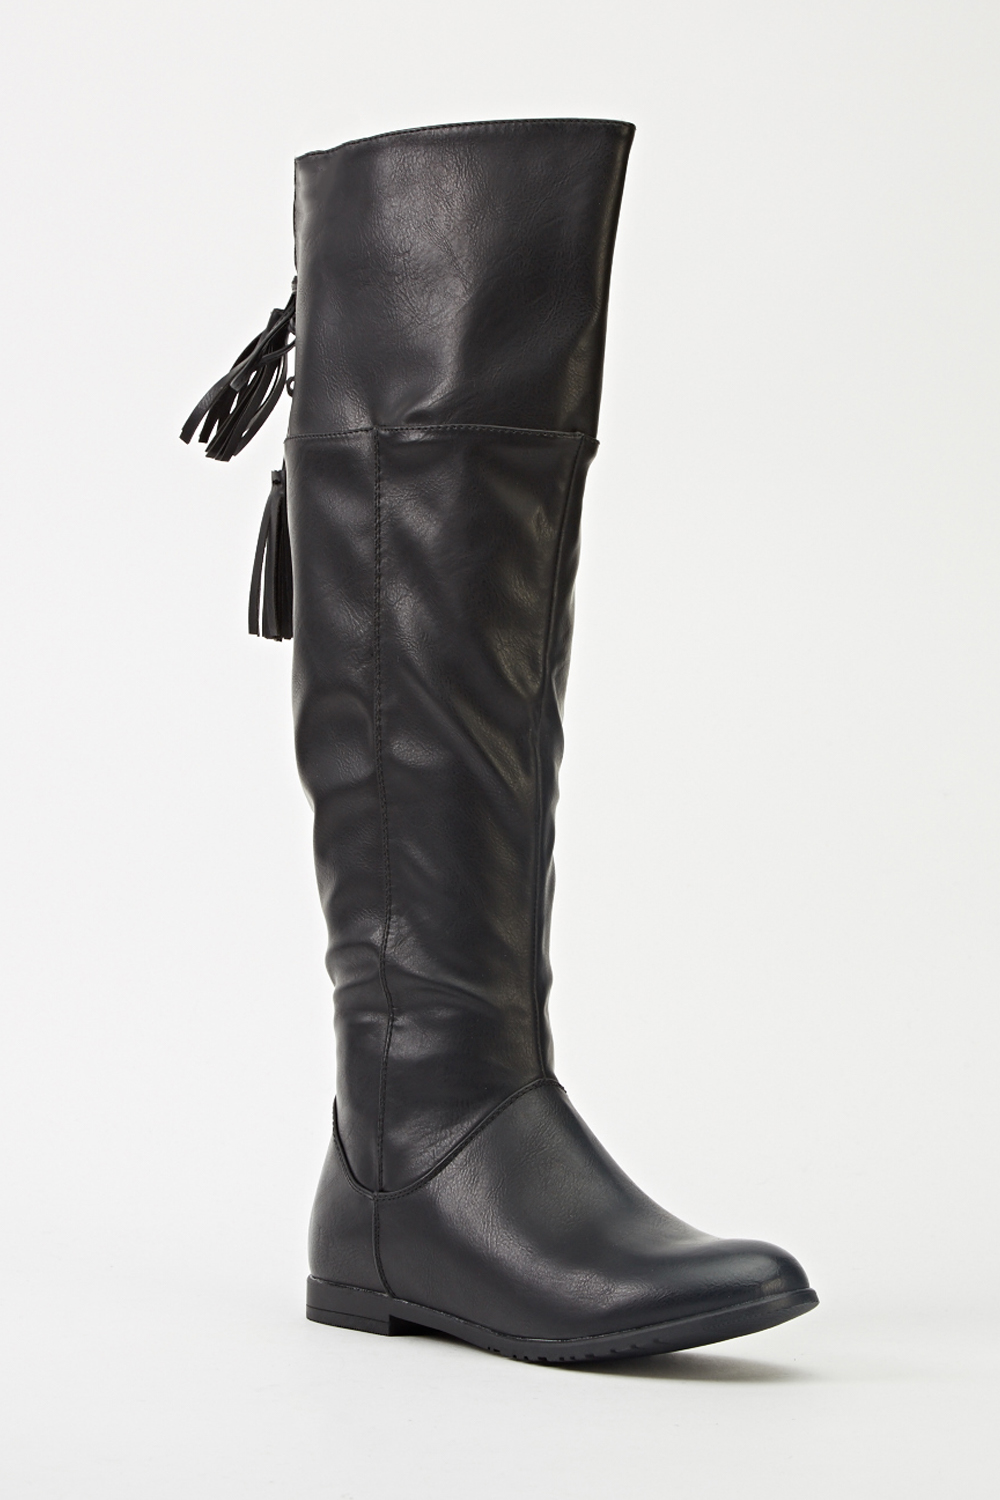 bdae3bf6c9f Black Faux Leather Knee High Boots - Just £5